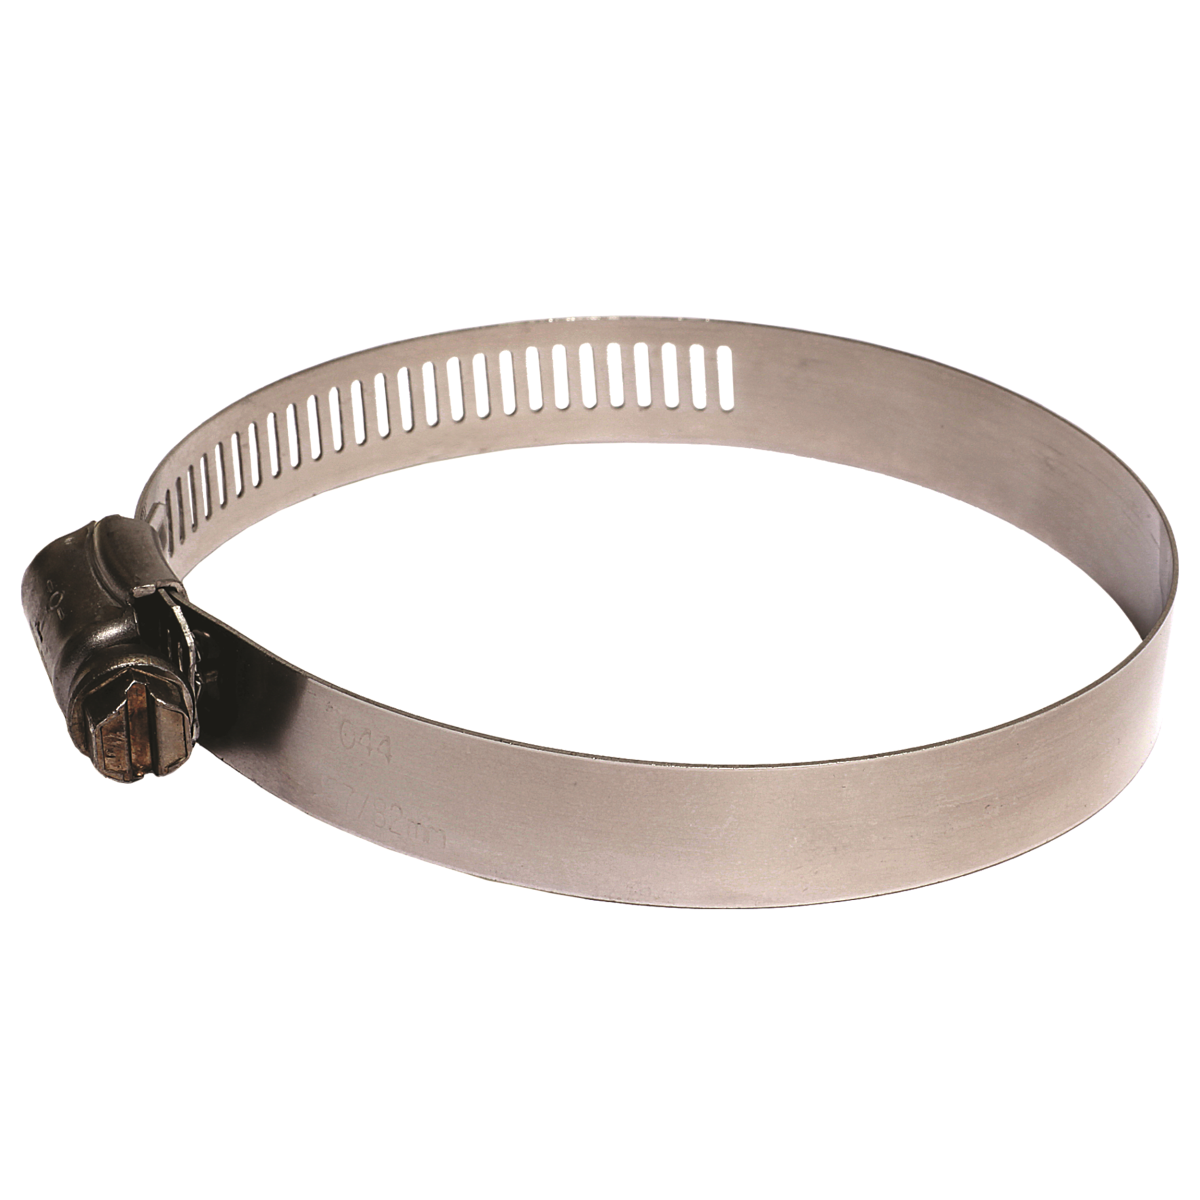 #10 Hose Clamps — All Stainless, 10/PKG